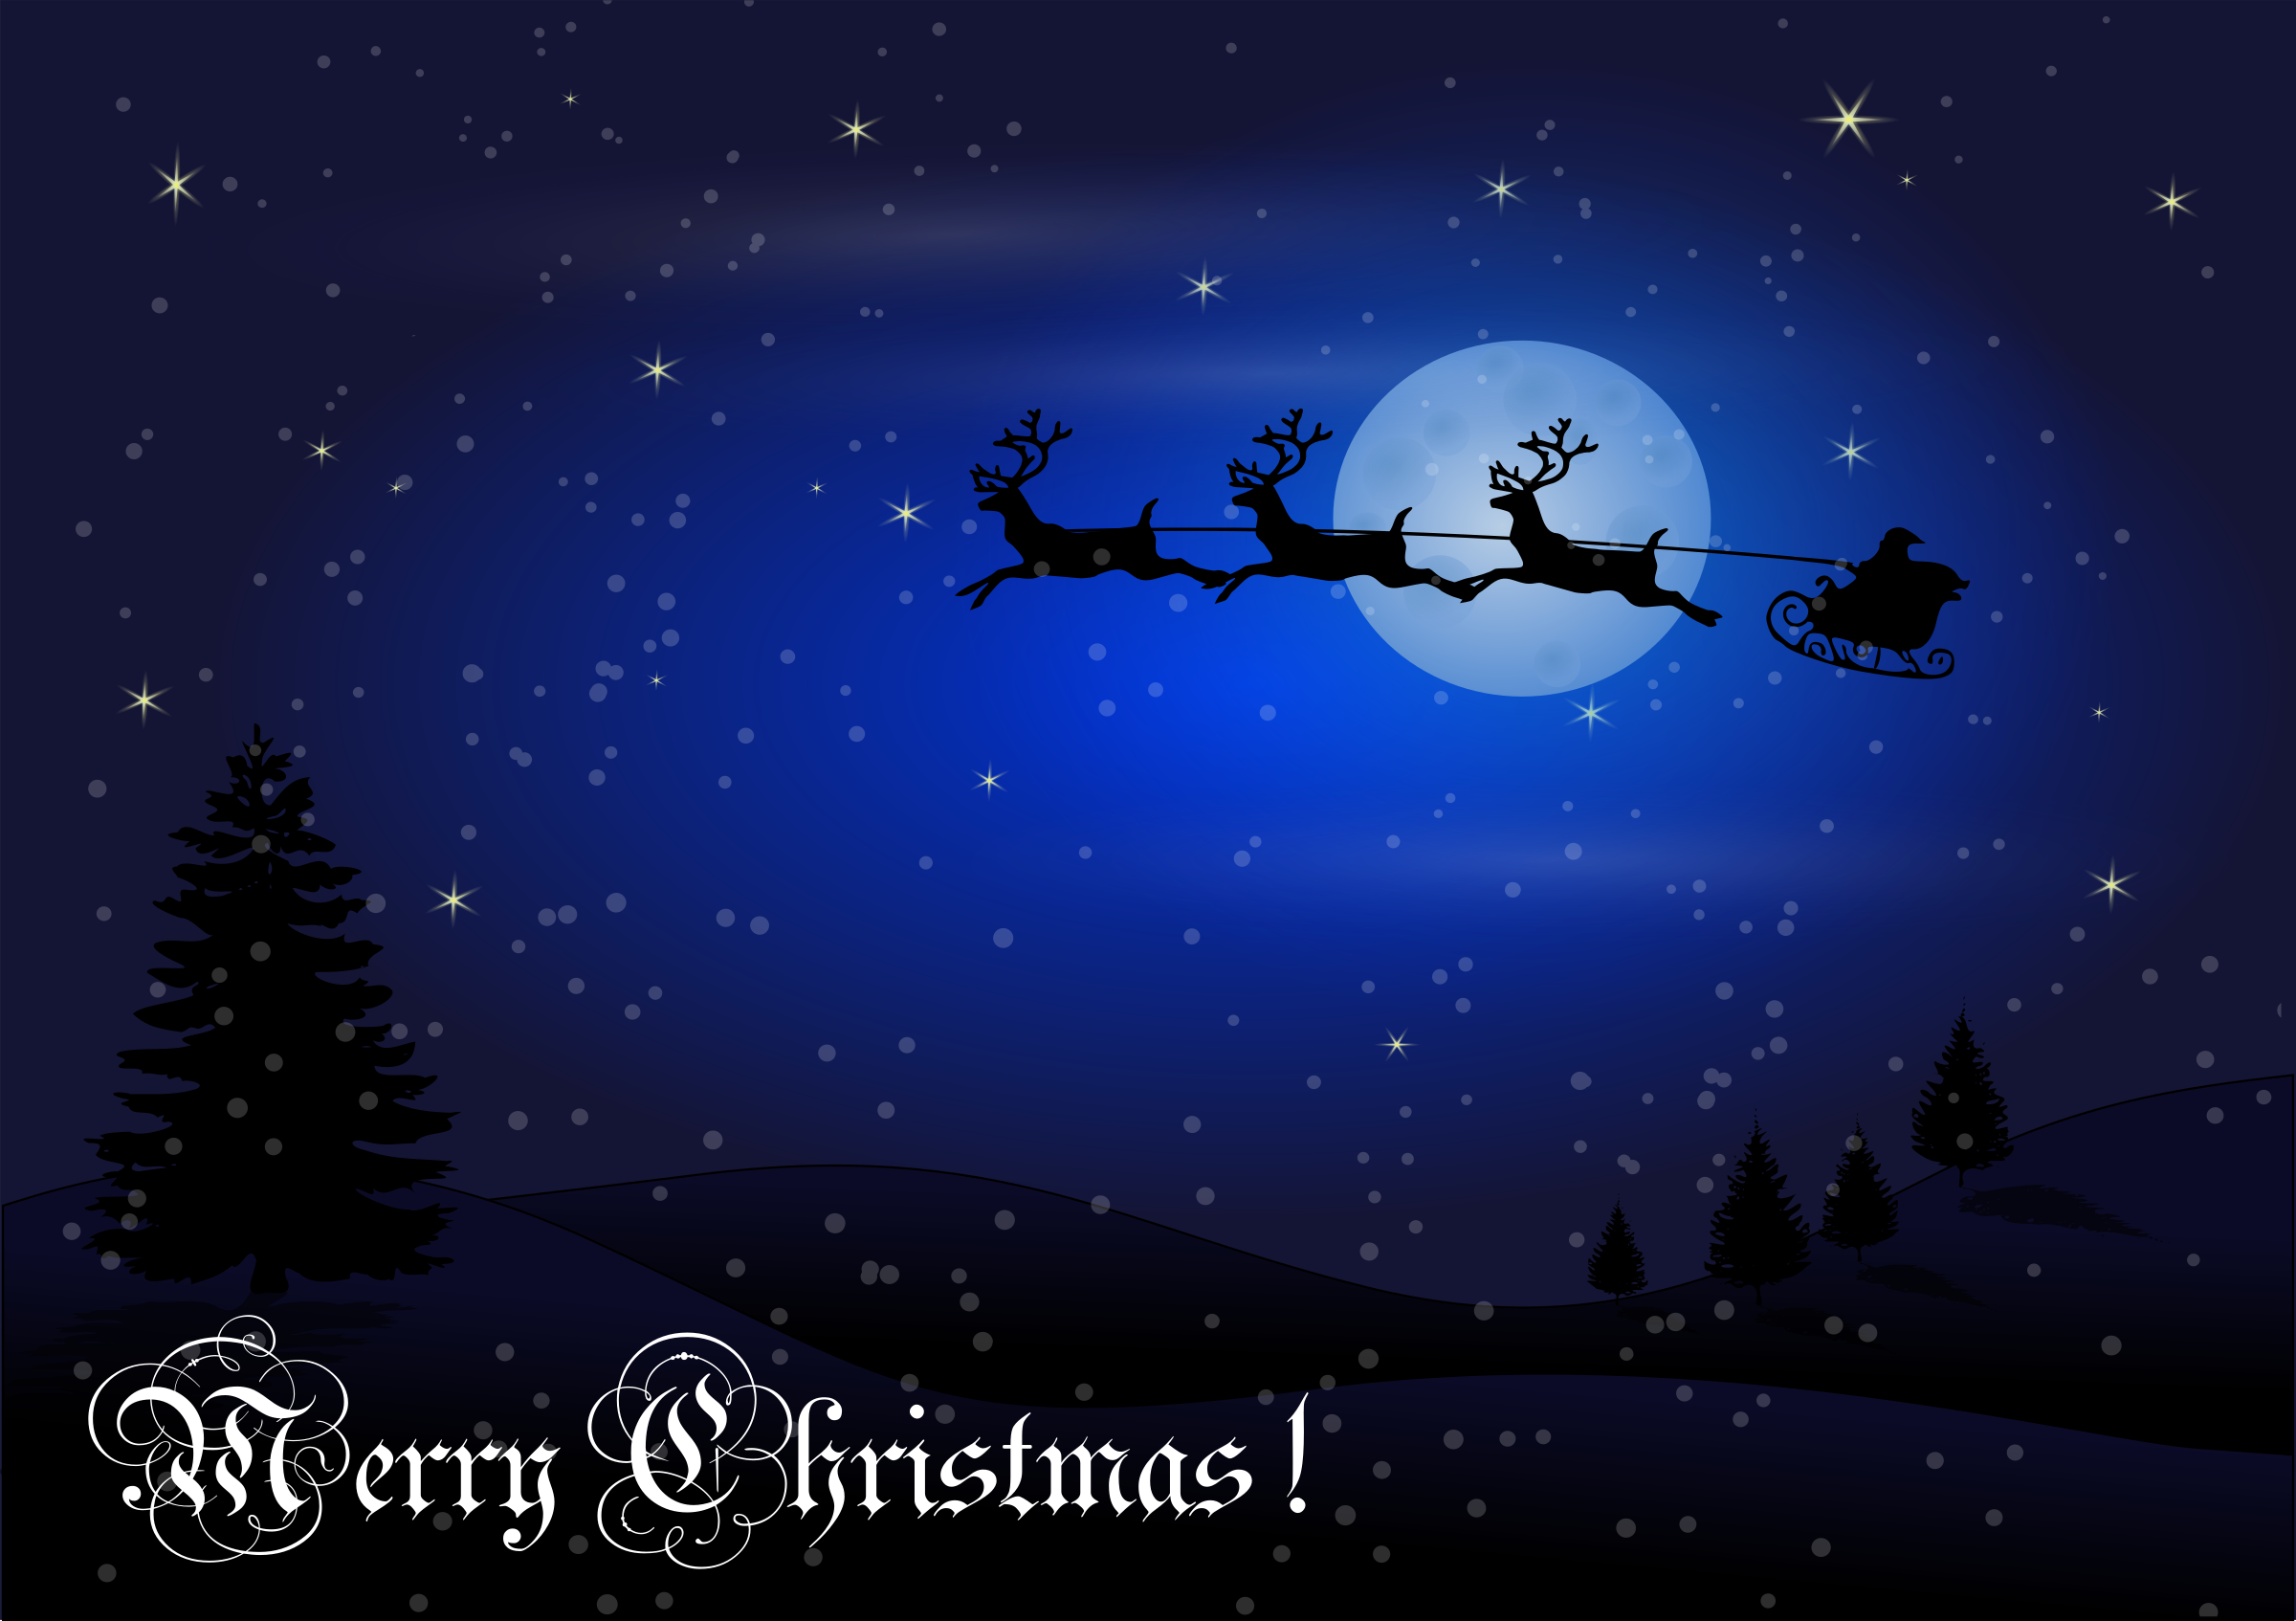 Christmas Card with Santa + Reindeer by Chrisdesign